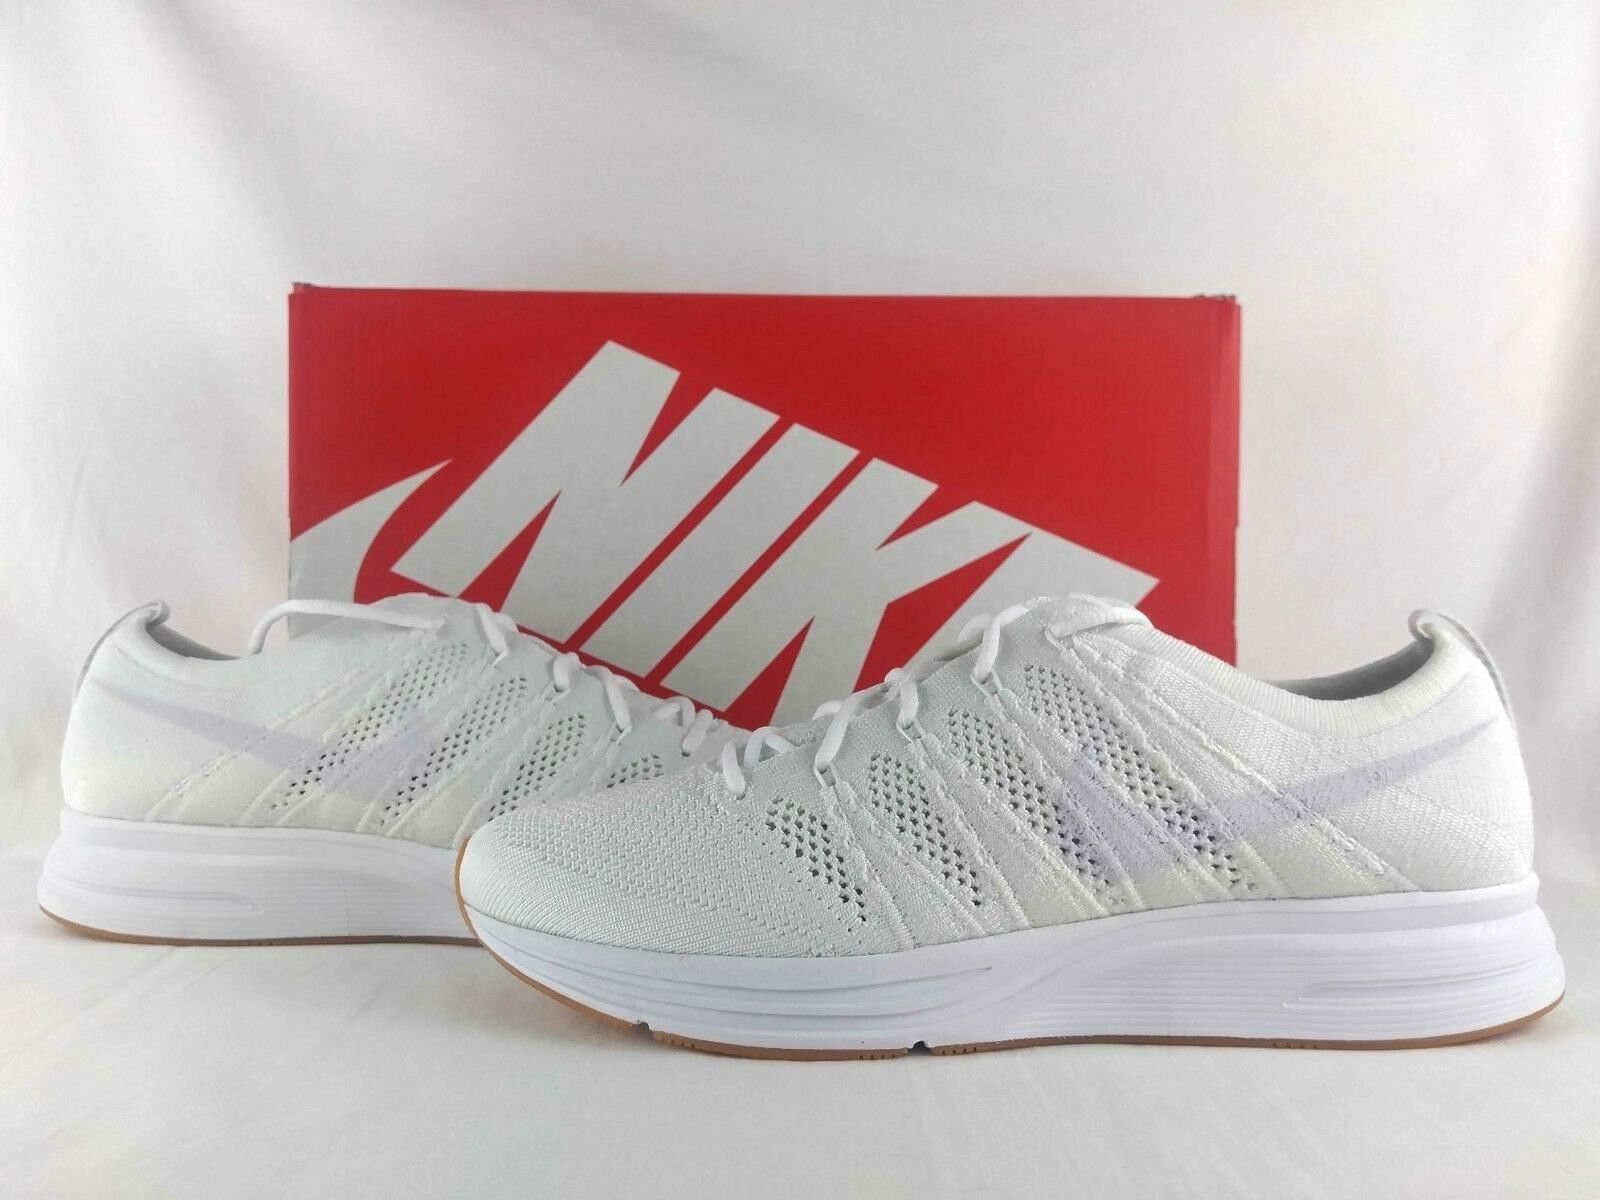 Nike Flyknit Trainer Triple White Gum Running shoes Lifestyle Casual AH8396-102